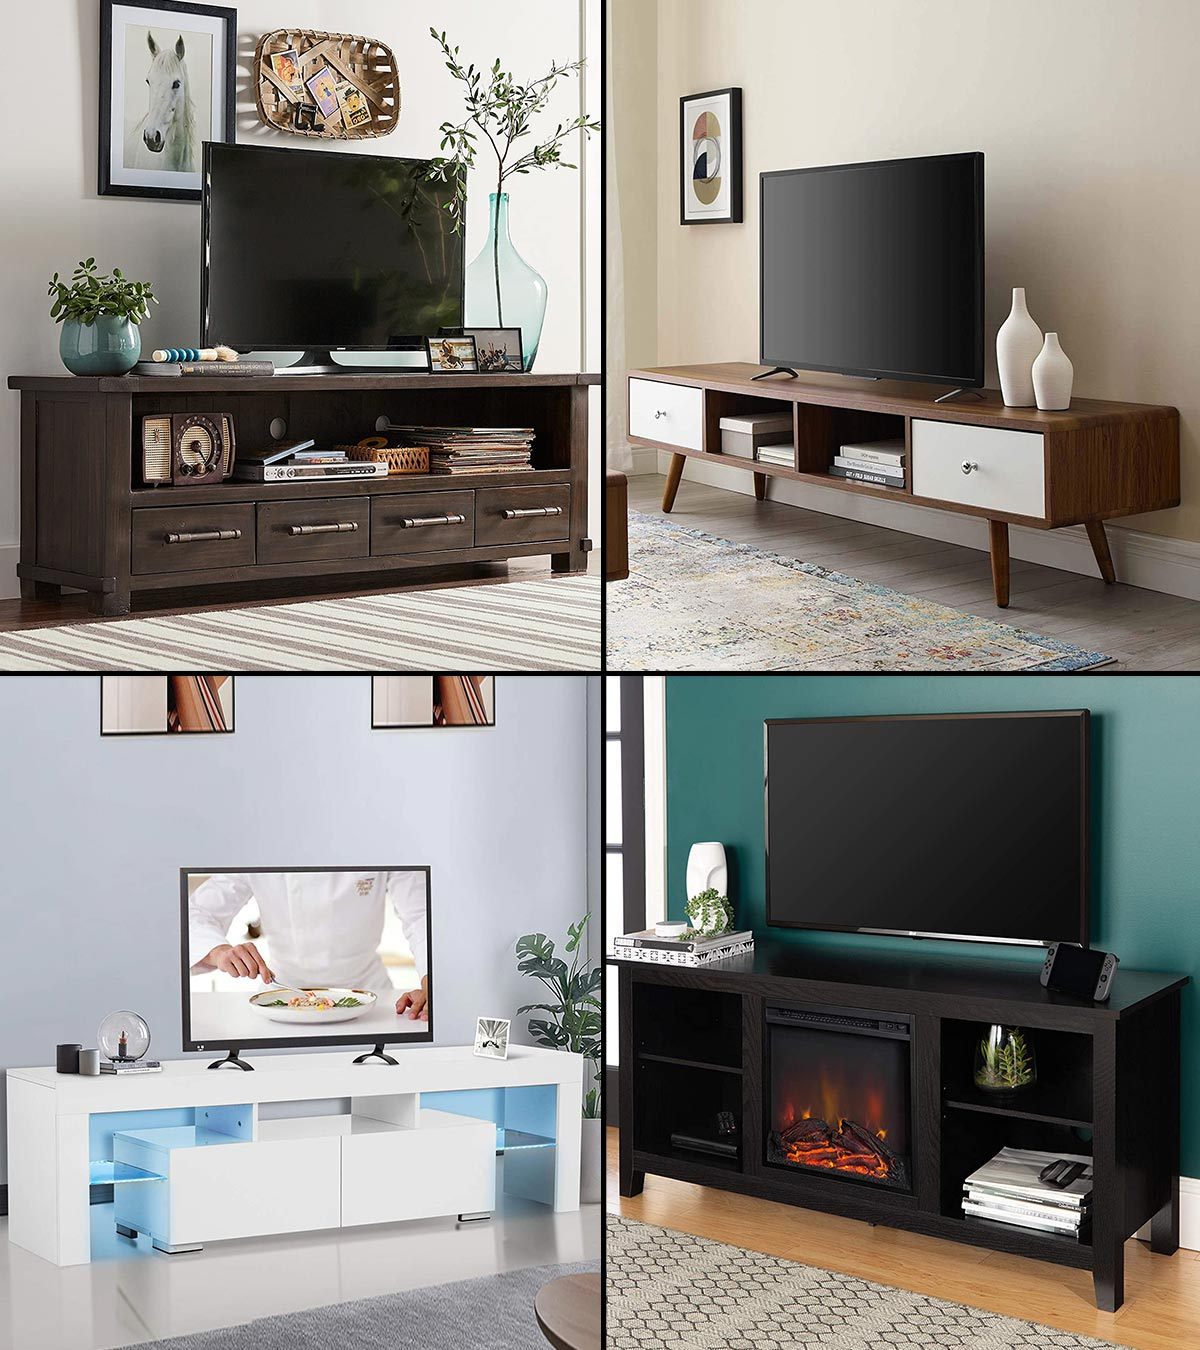 Best Tv Stands For 65 Inch Tv Of 2020